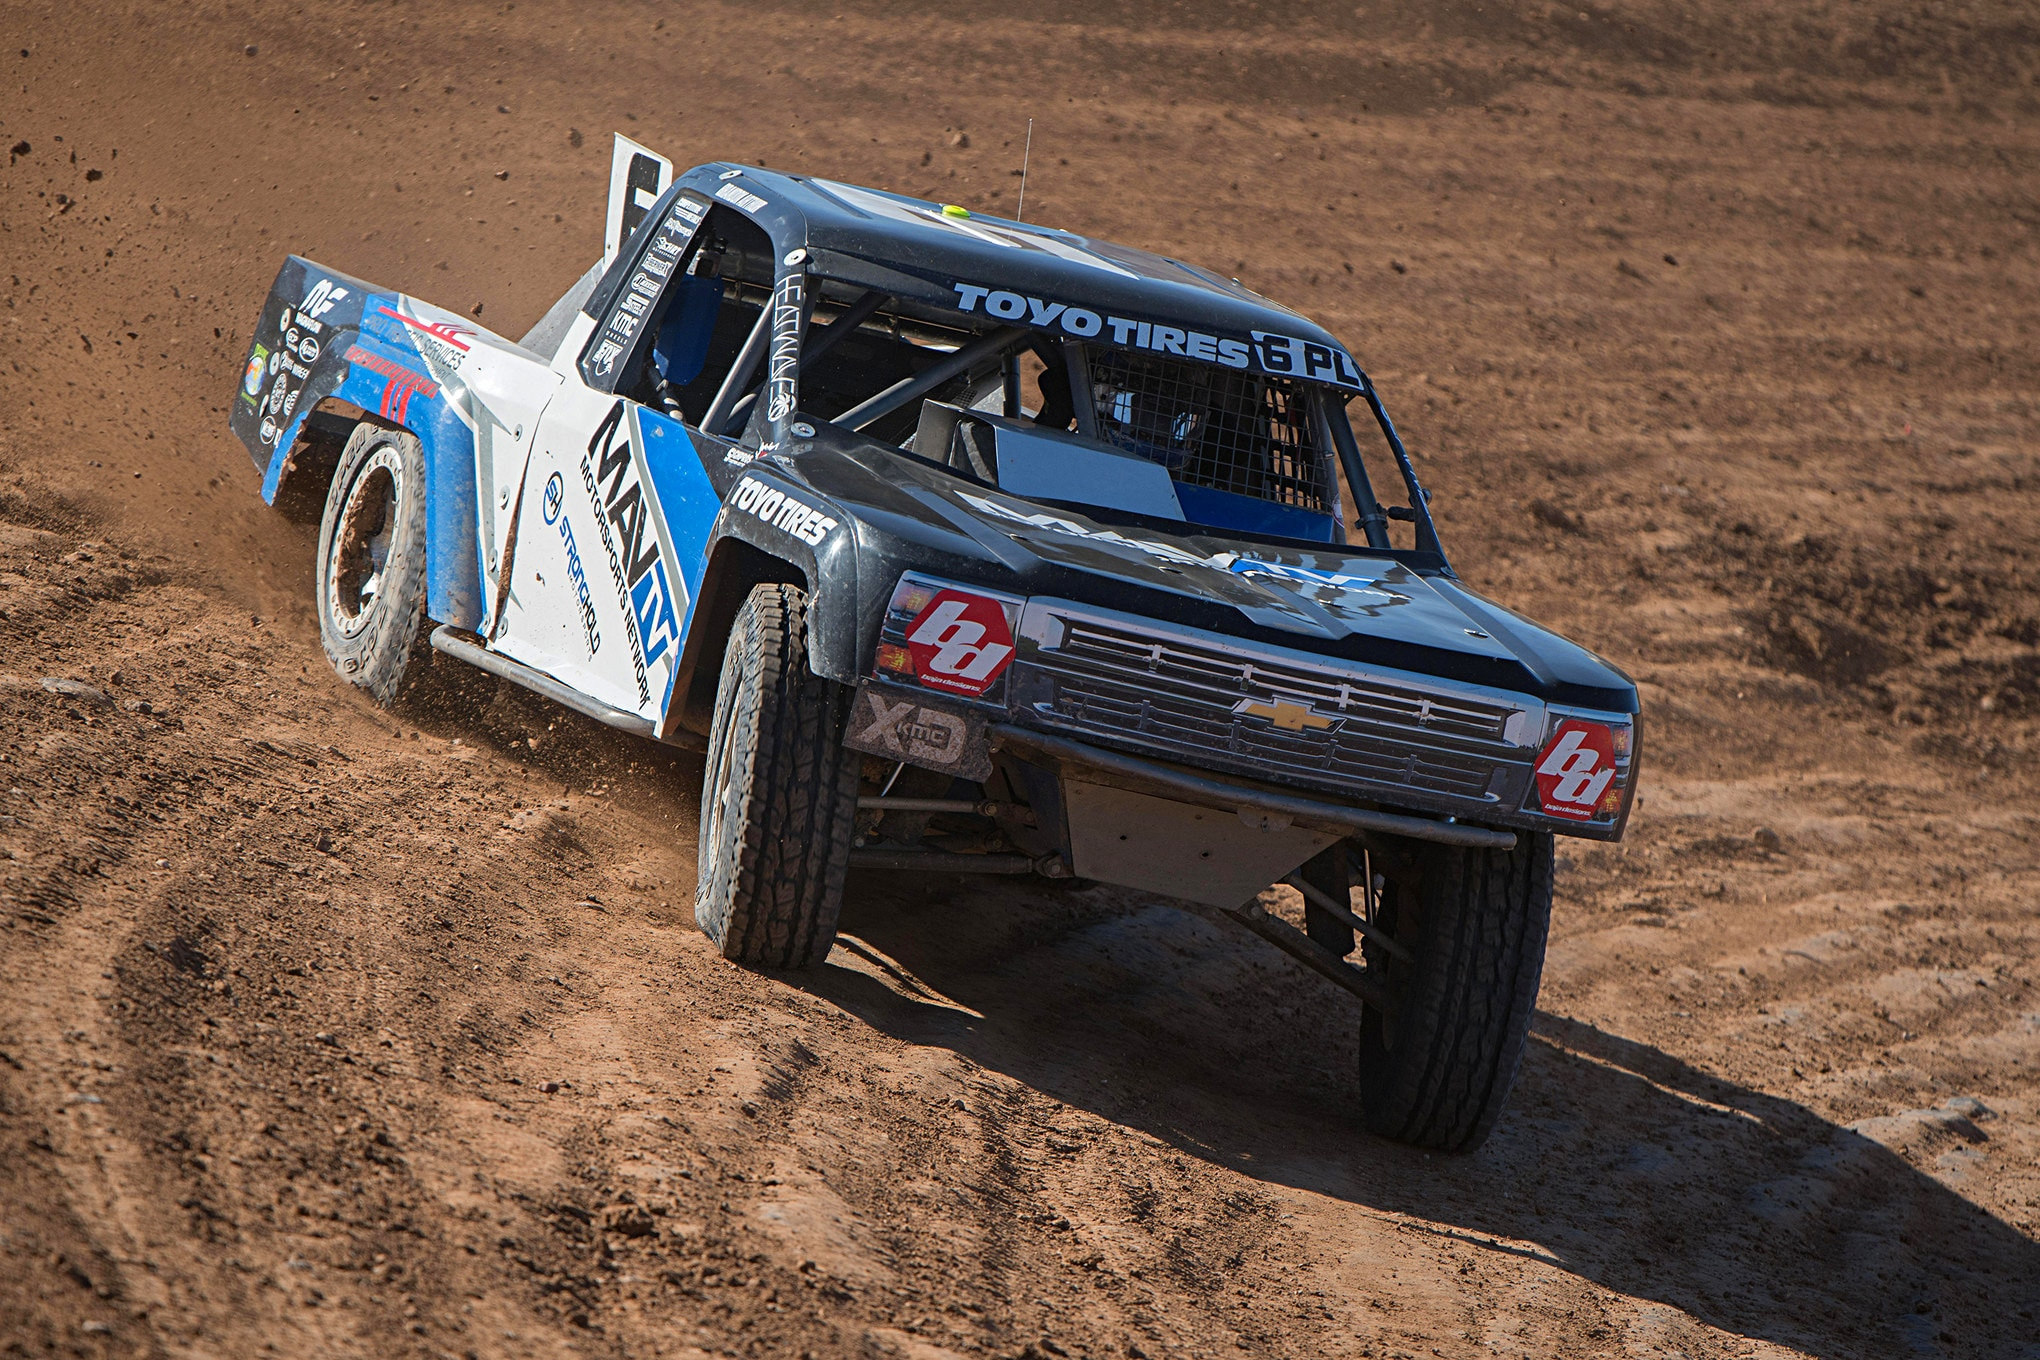 Brandon Arthur on his way to another Challenge Cup victory in his MavTv Prolite vehicle.